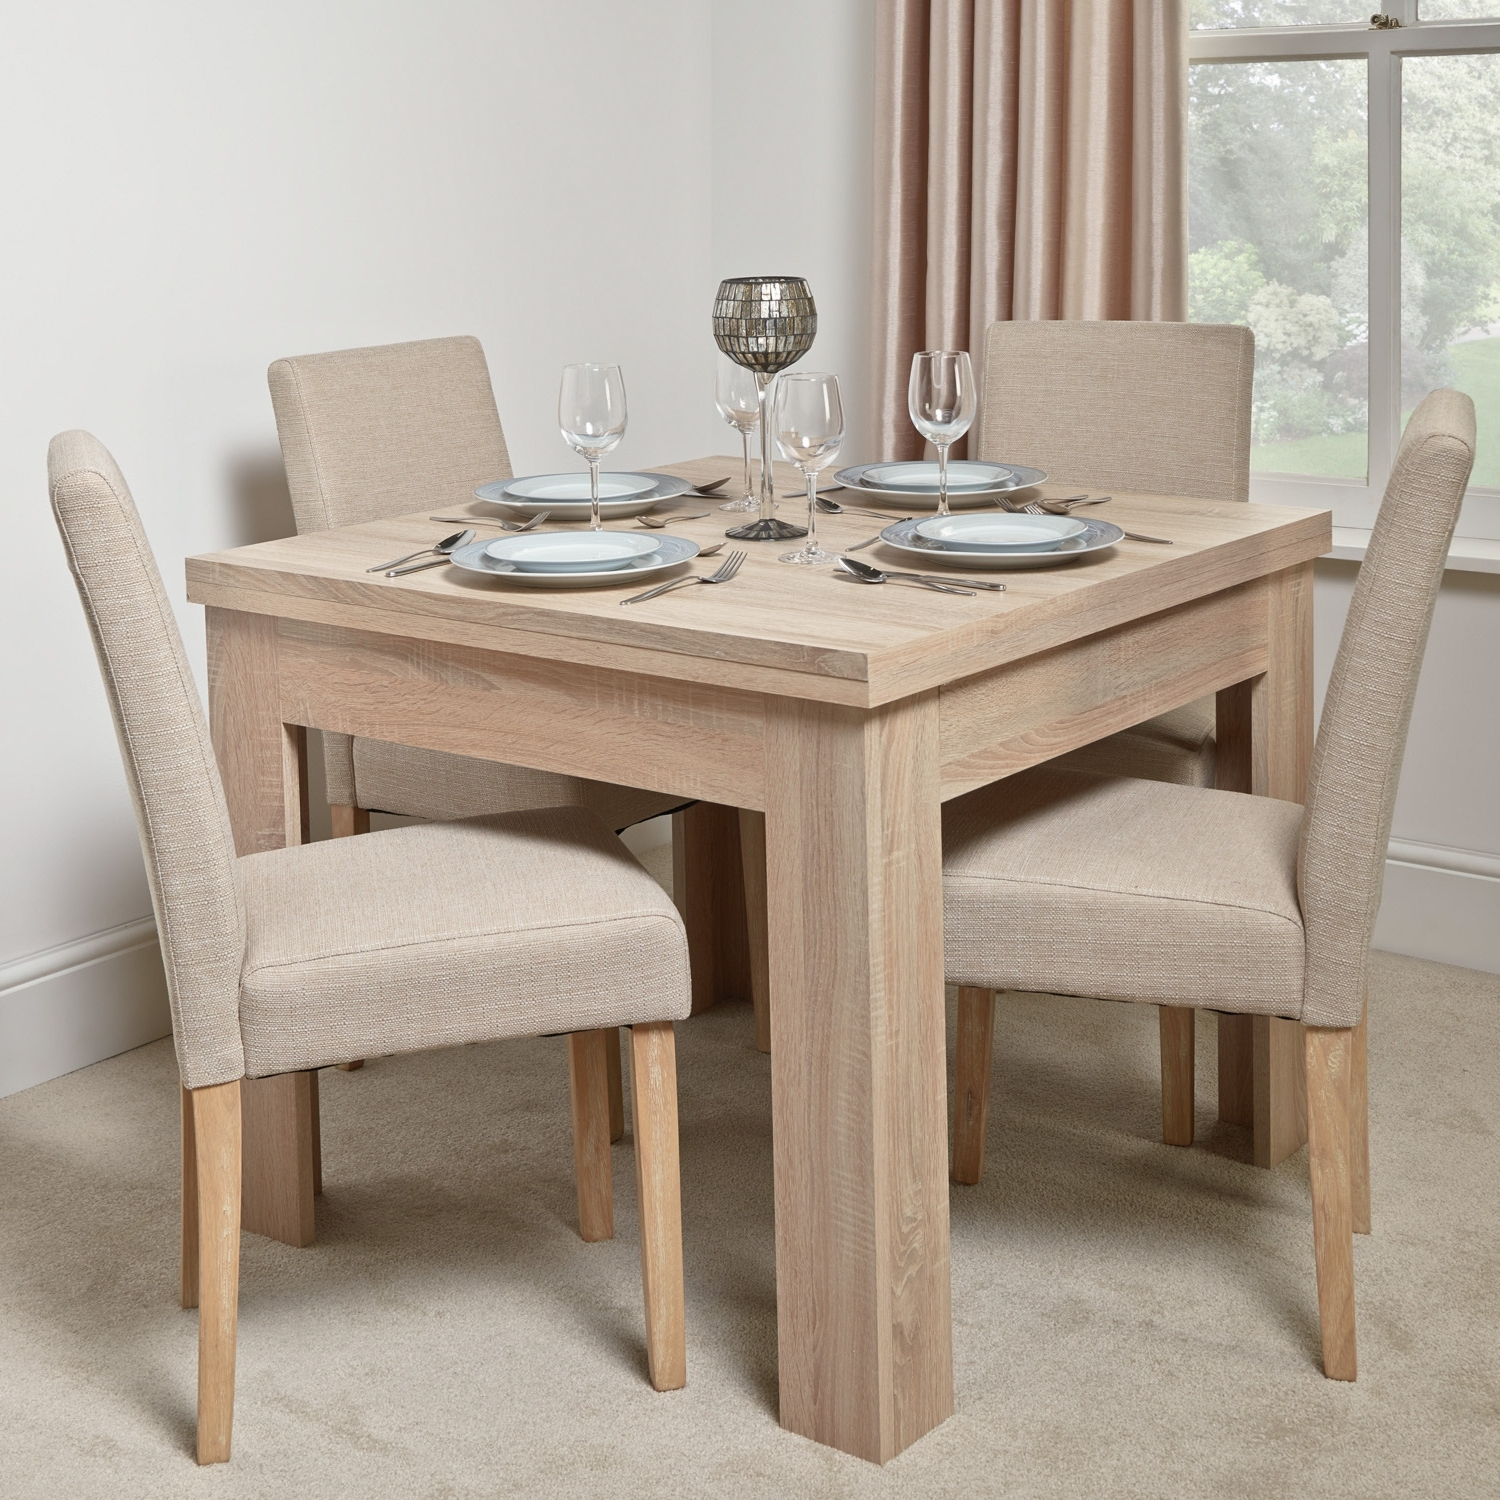 Calpe Flip Extending Dining Table Inside Recent Extending Dining Tables (View 3 of 25)